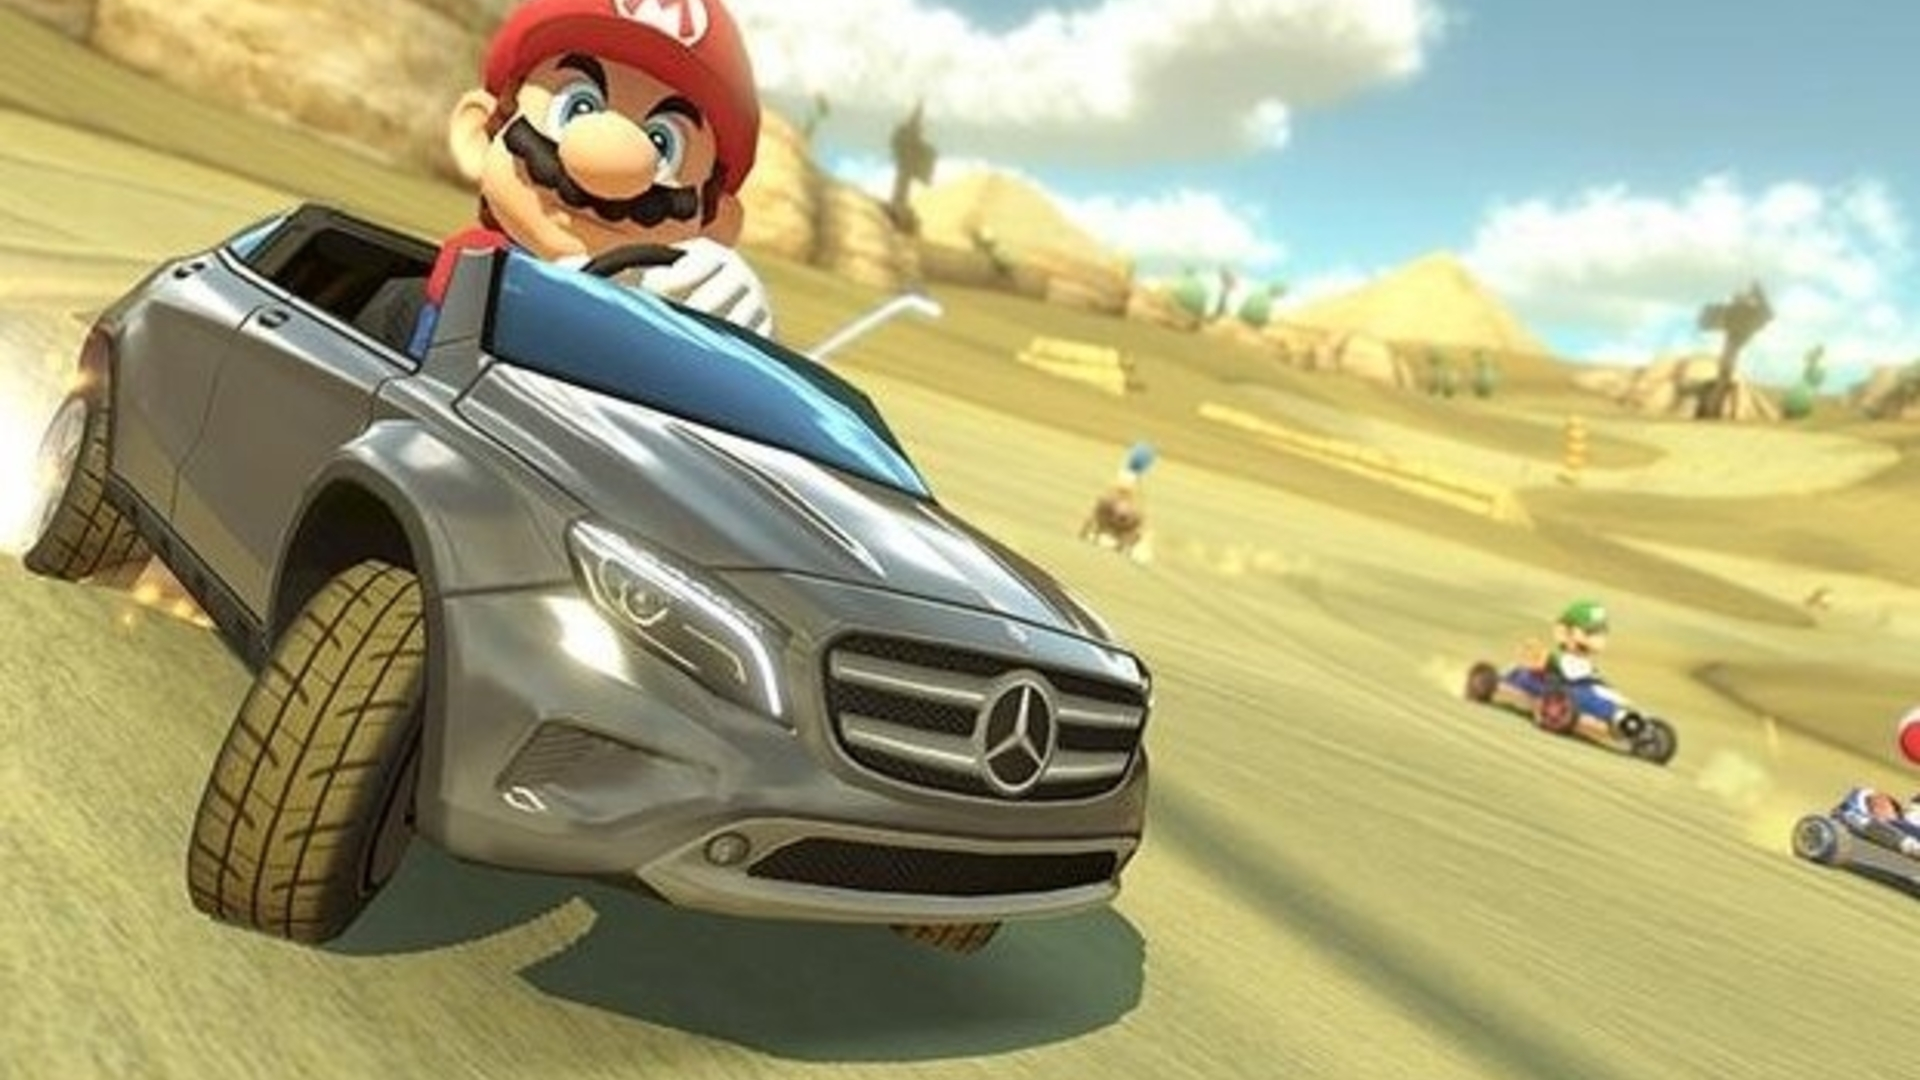 Hackers under fire for Mario Kart 8 Wii U modding